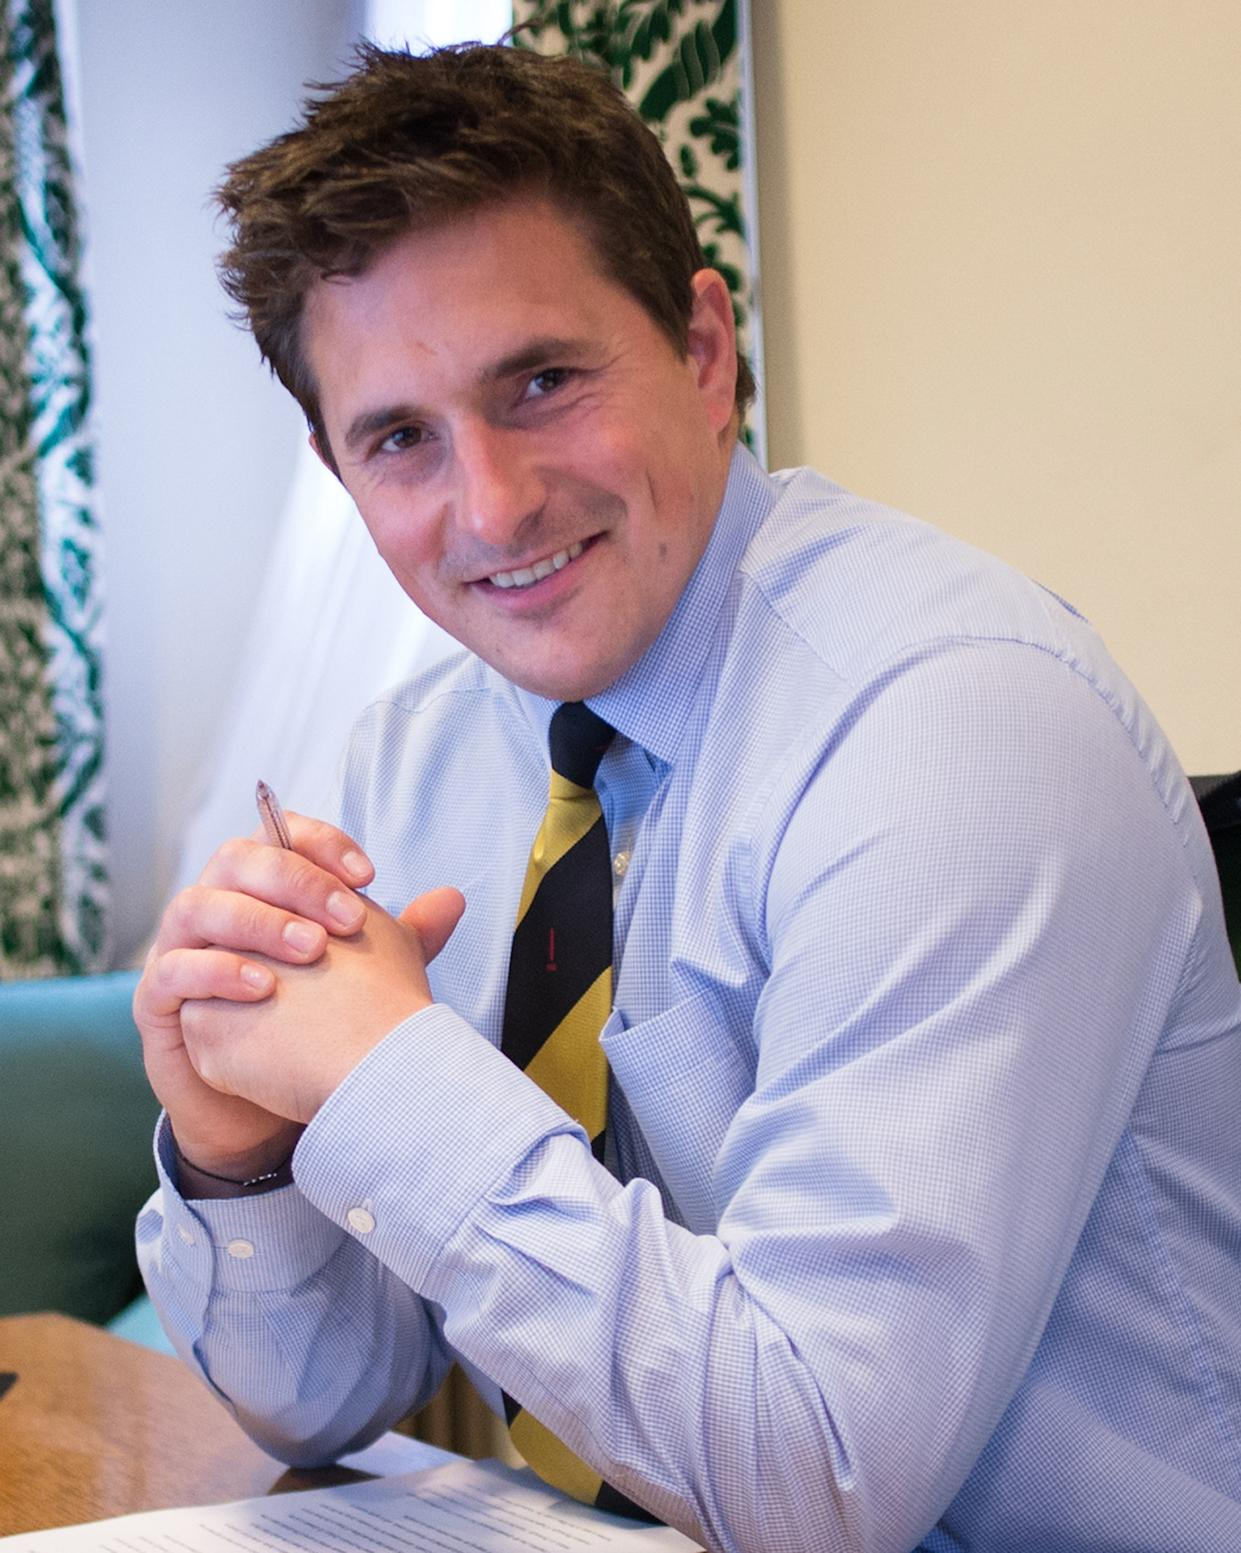 """File photo dated 01/06/15 of Conservative MP Johnny Mercer, who has campaigned to protect veterans from repeated investigations into historical allegations, described a memorandum published by The Sunday Telegraph as a """"sucker punch"""", saying he found the comments """"genuinely appalling""""."""